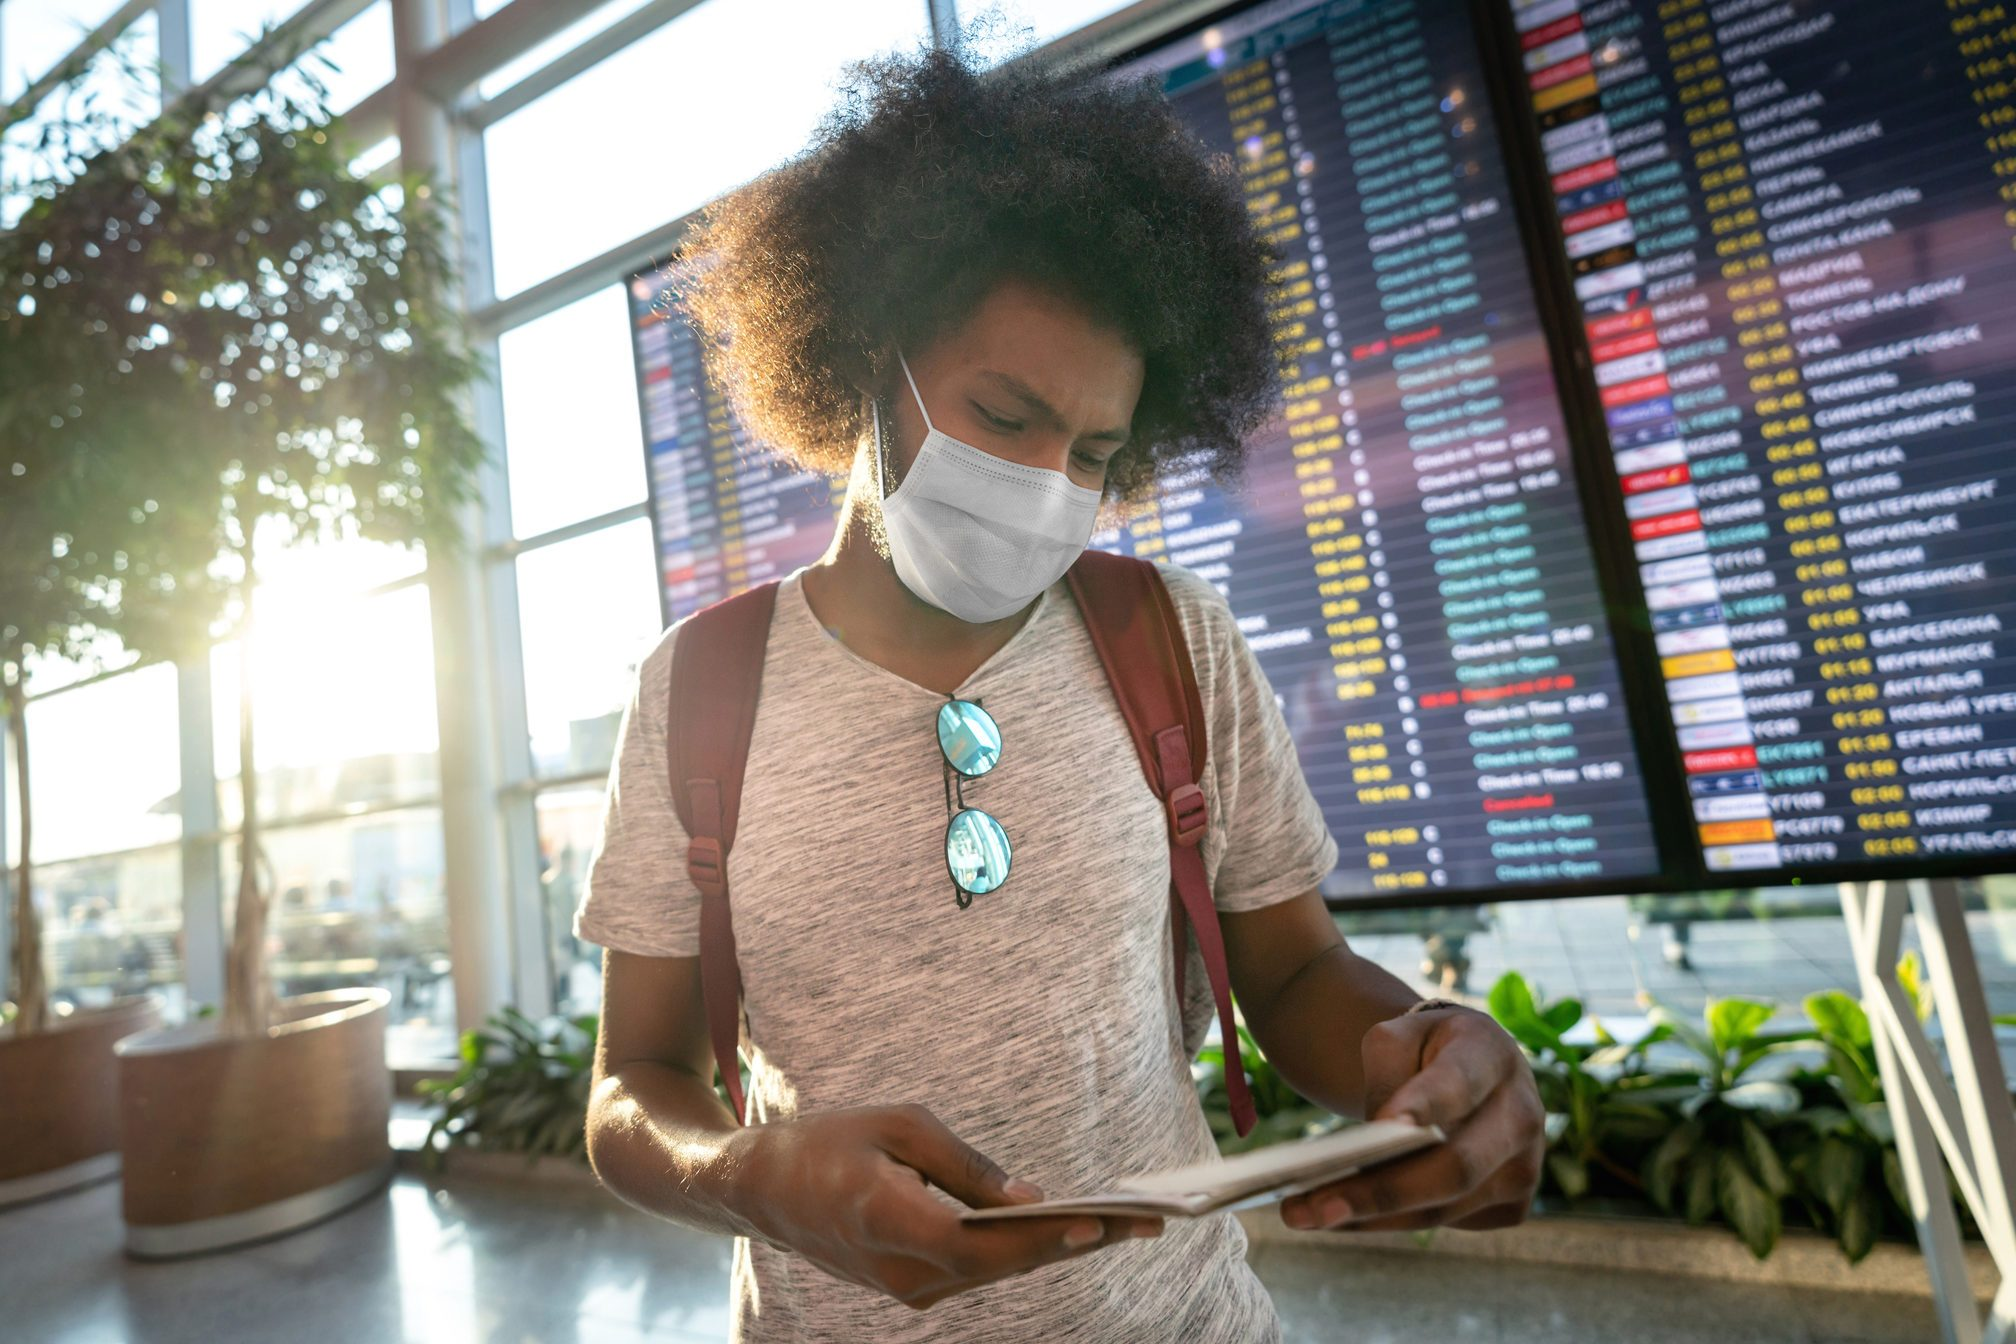 Male traveler wearing a facemask at the airport